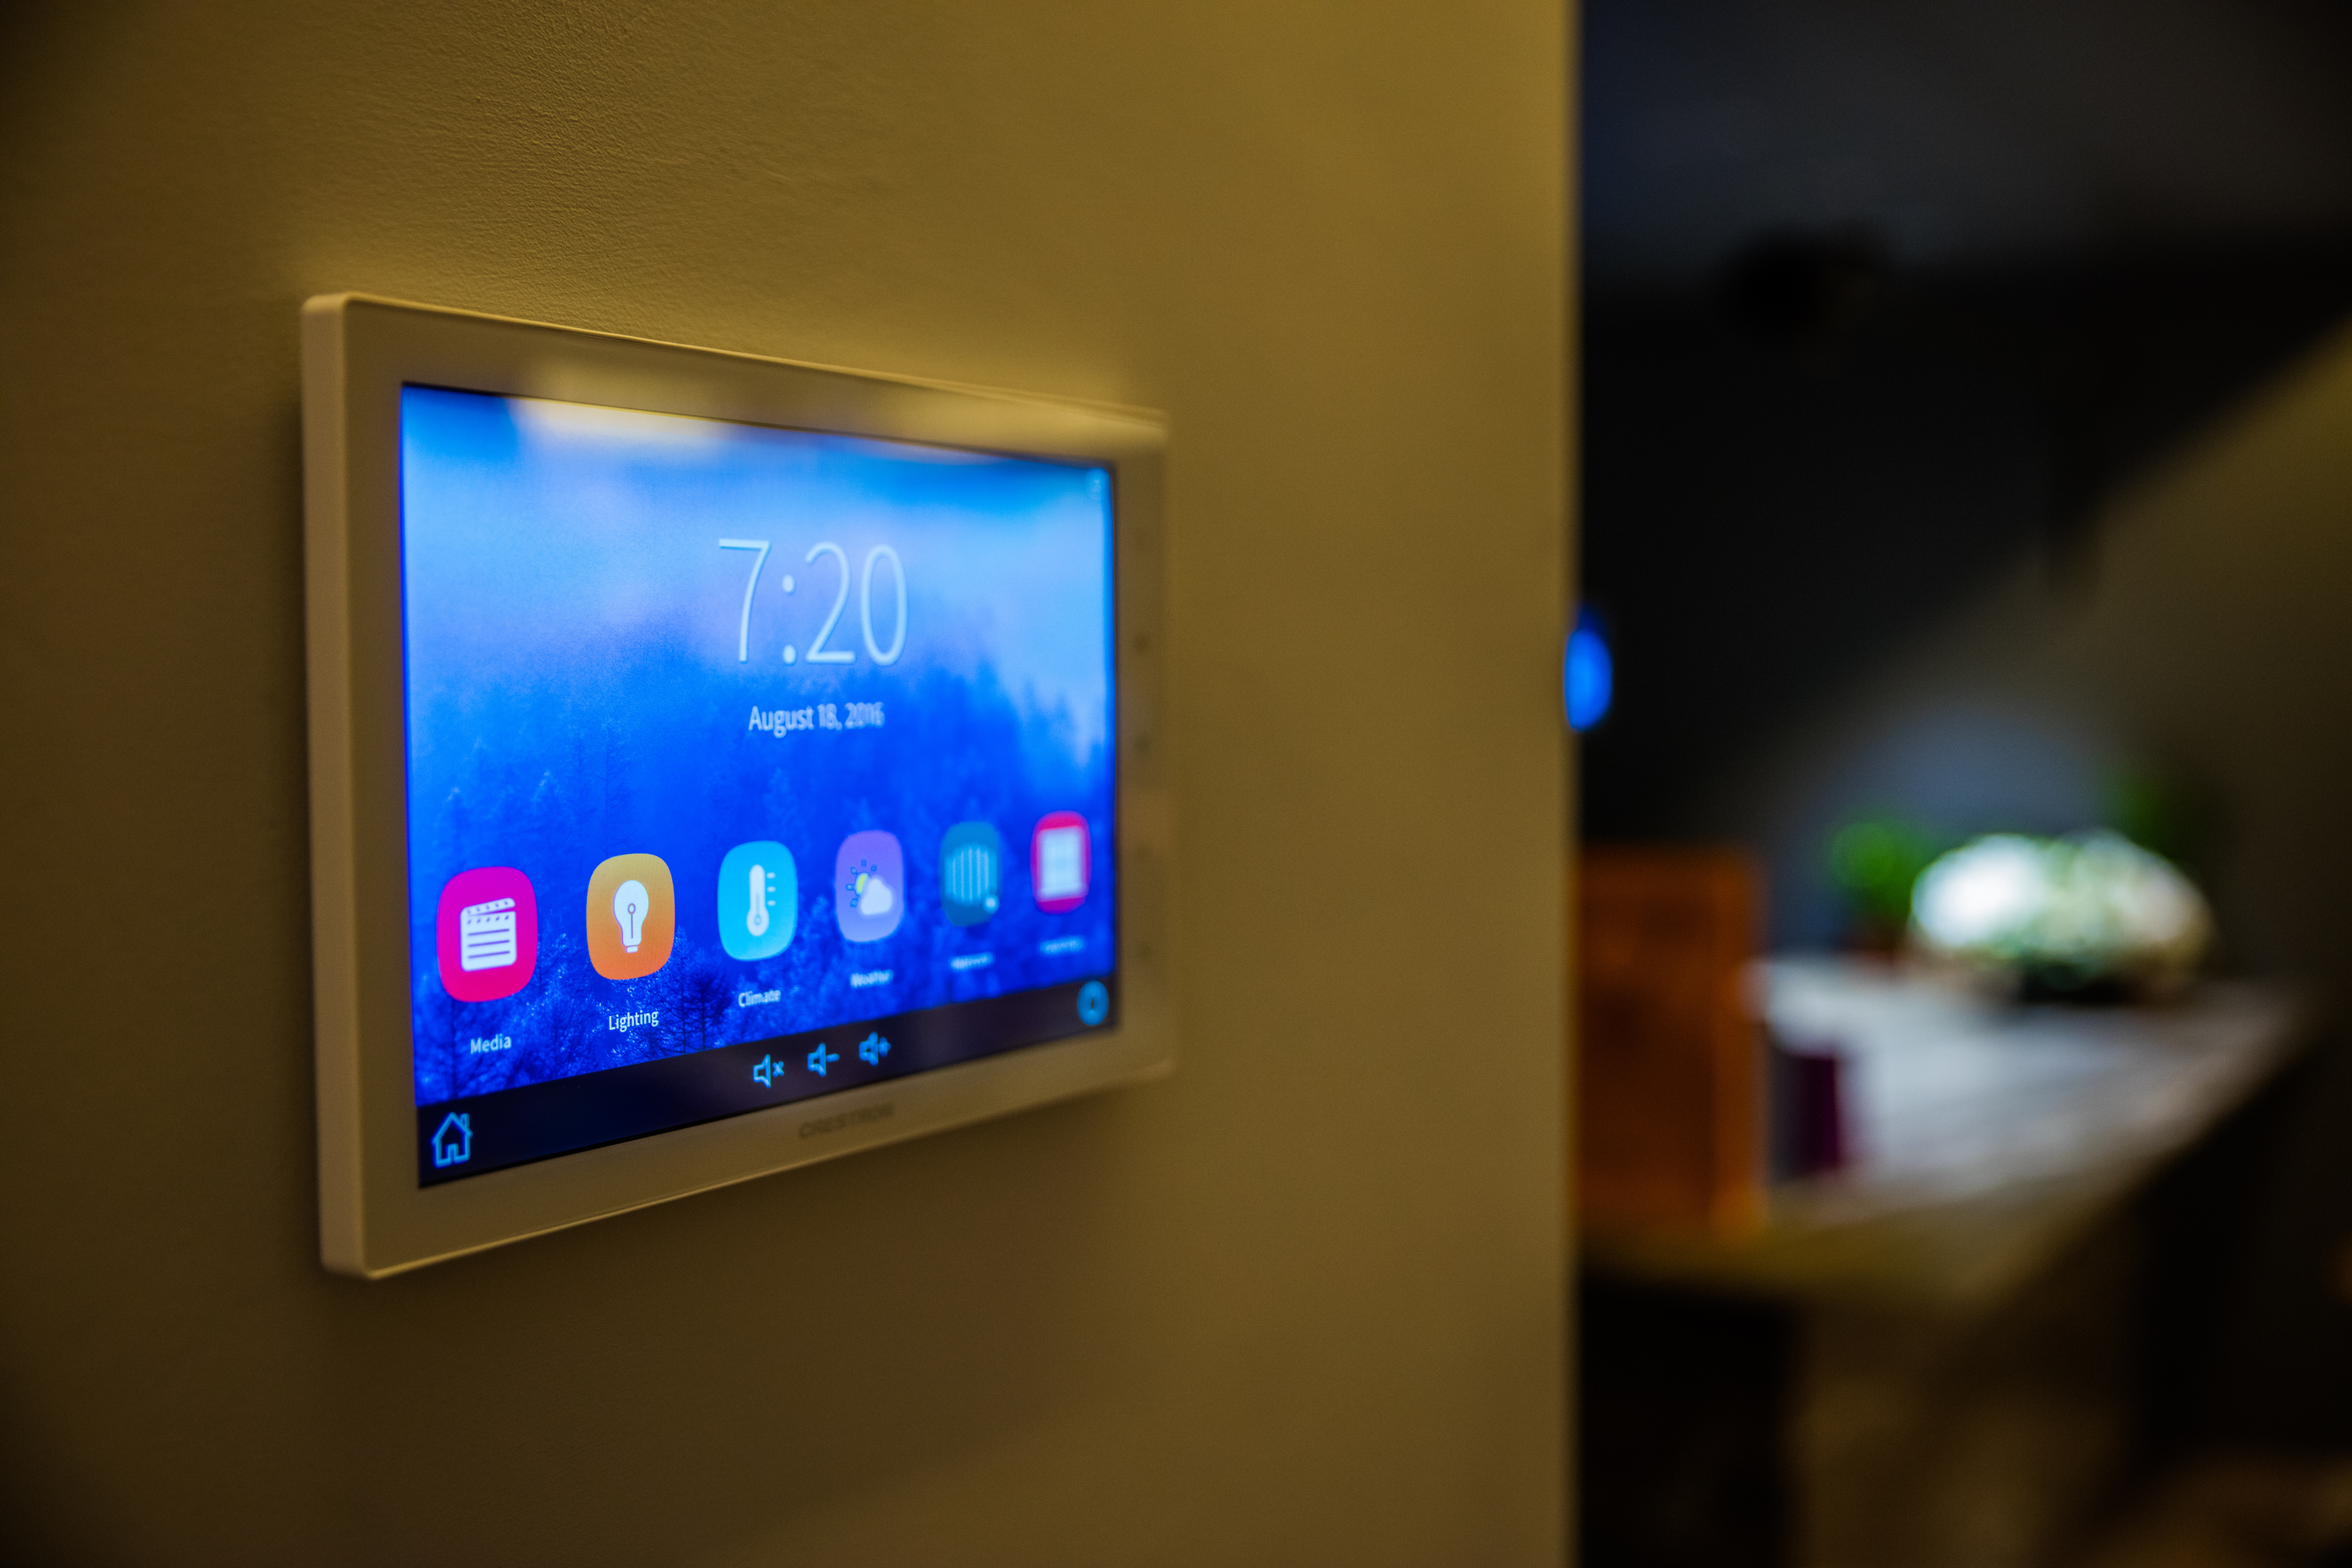 Crestron on-wall touchscreen as a representation of on-wall touchscreens